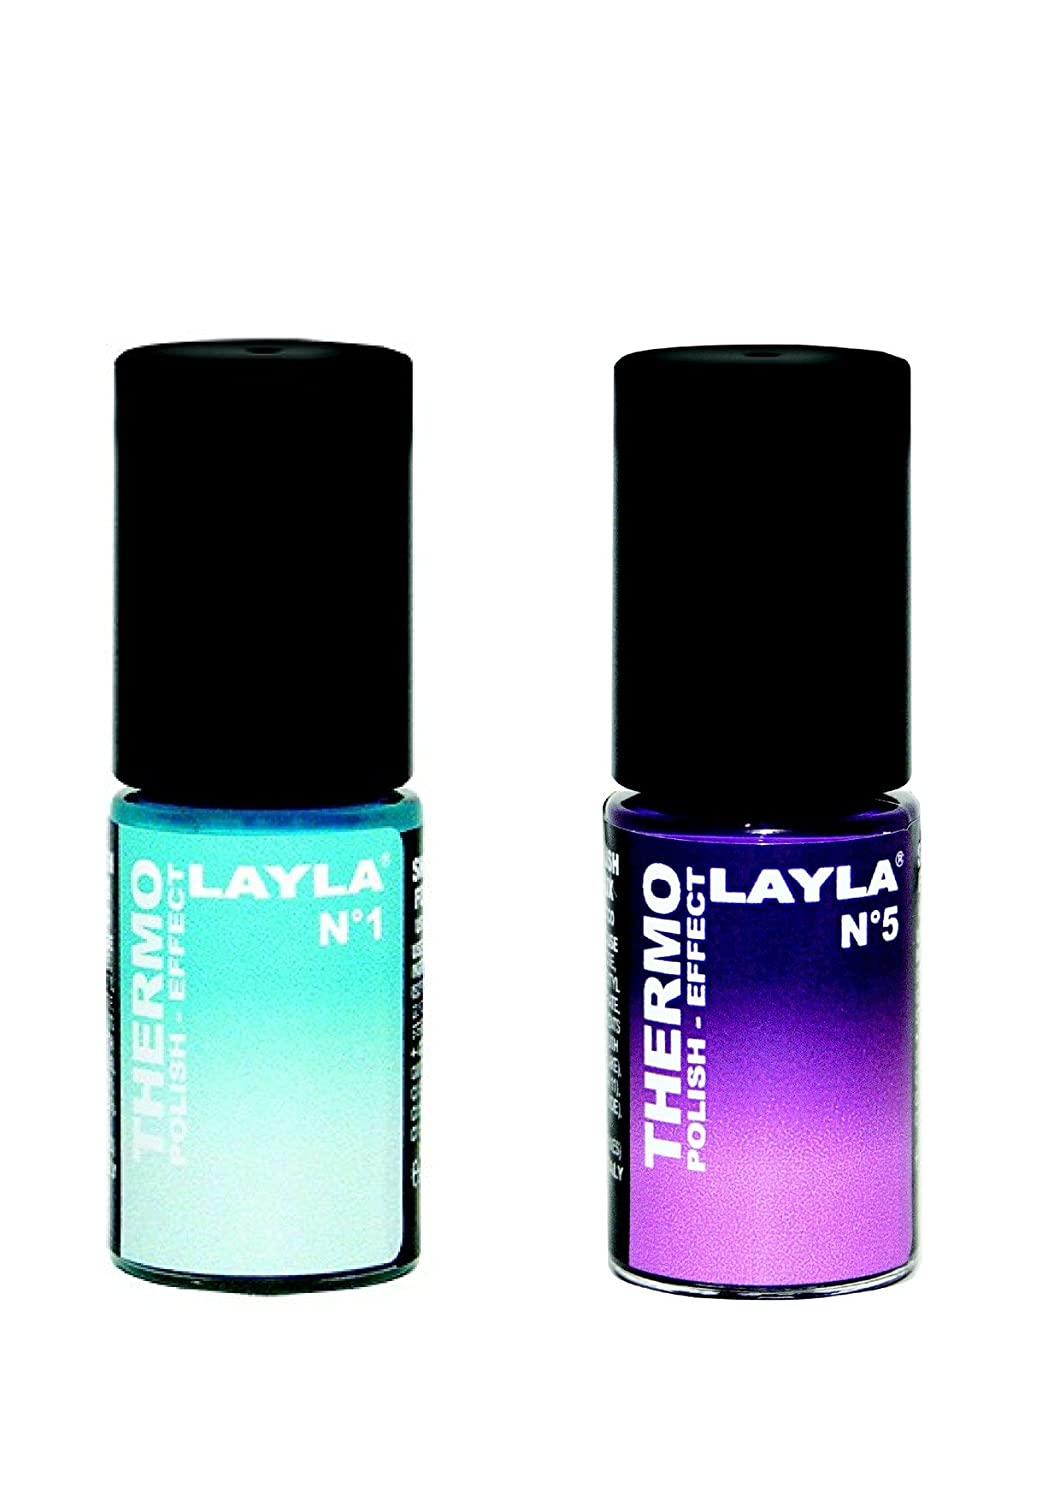 LAYLA Vernis à ongles thermique Duo Pack n ° 2 RNBCOSMETICS